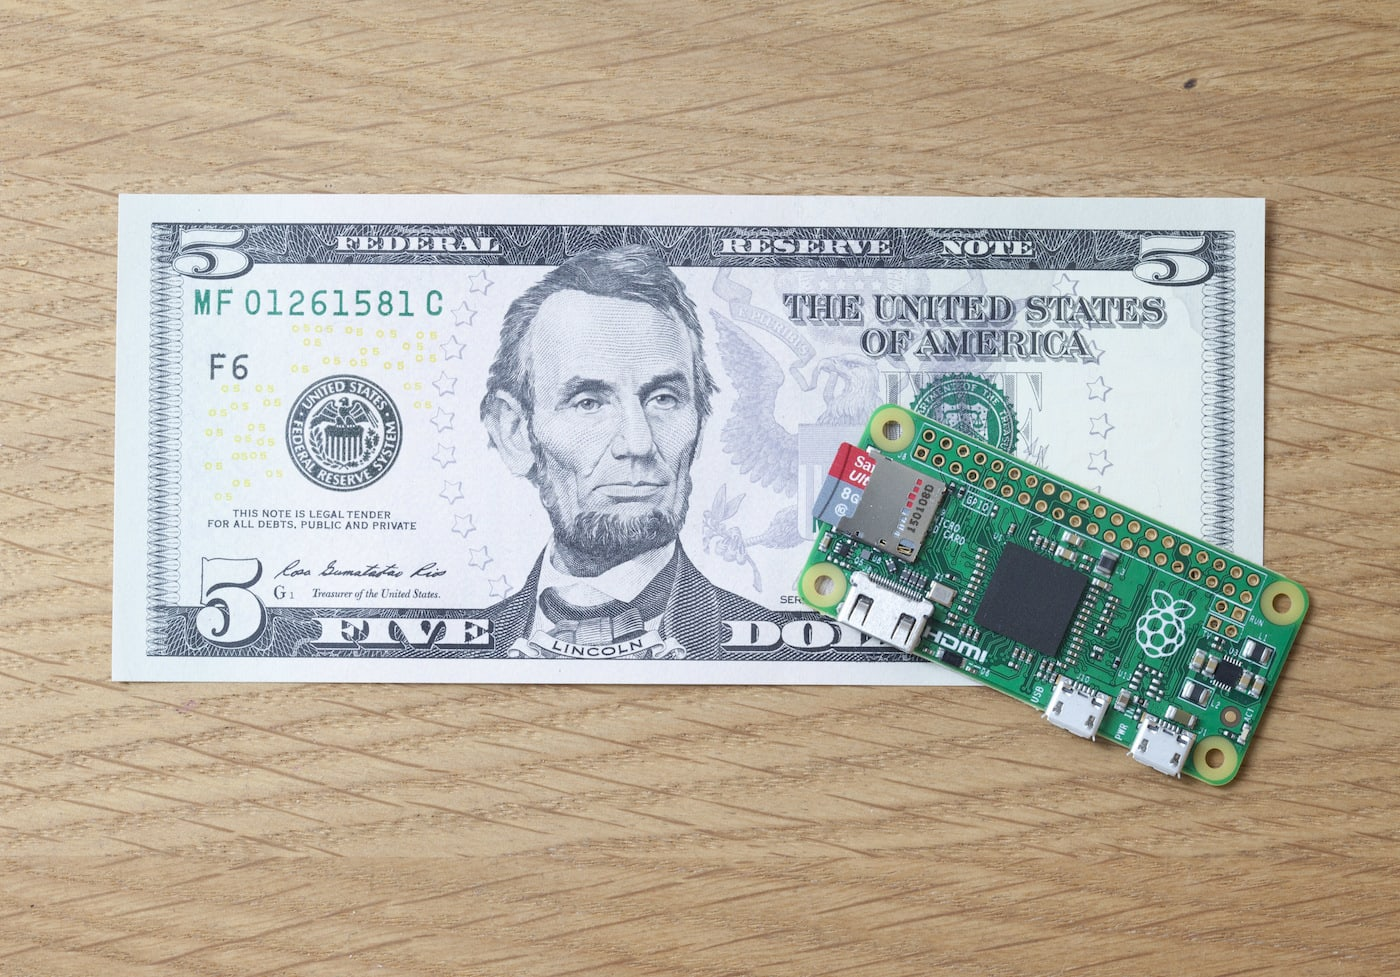 You partly have Eric Schmidt to thank for the new $5 Raspberry Pi